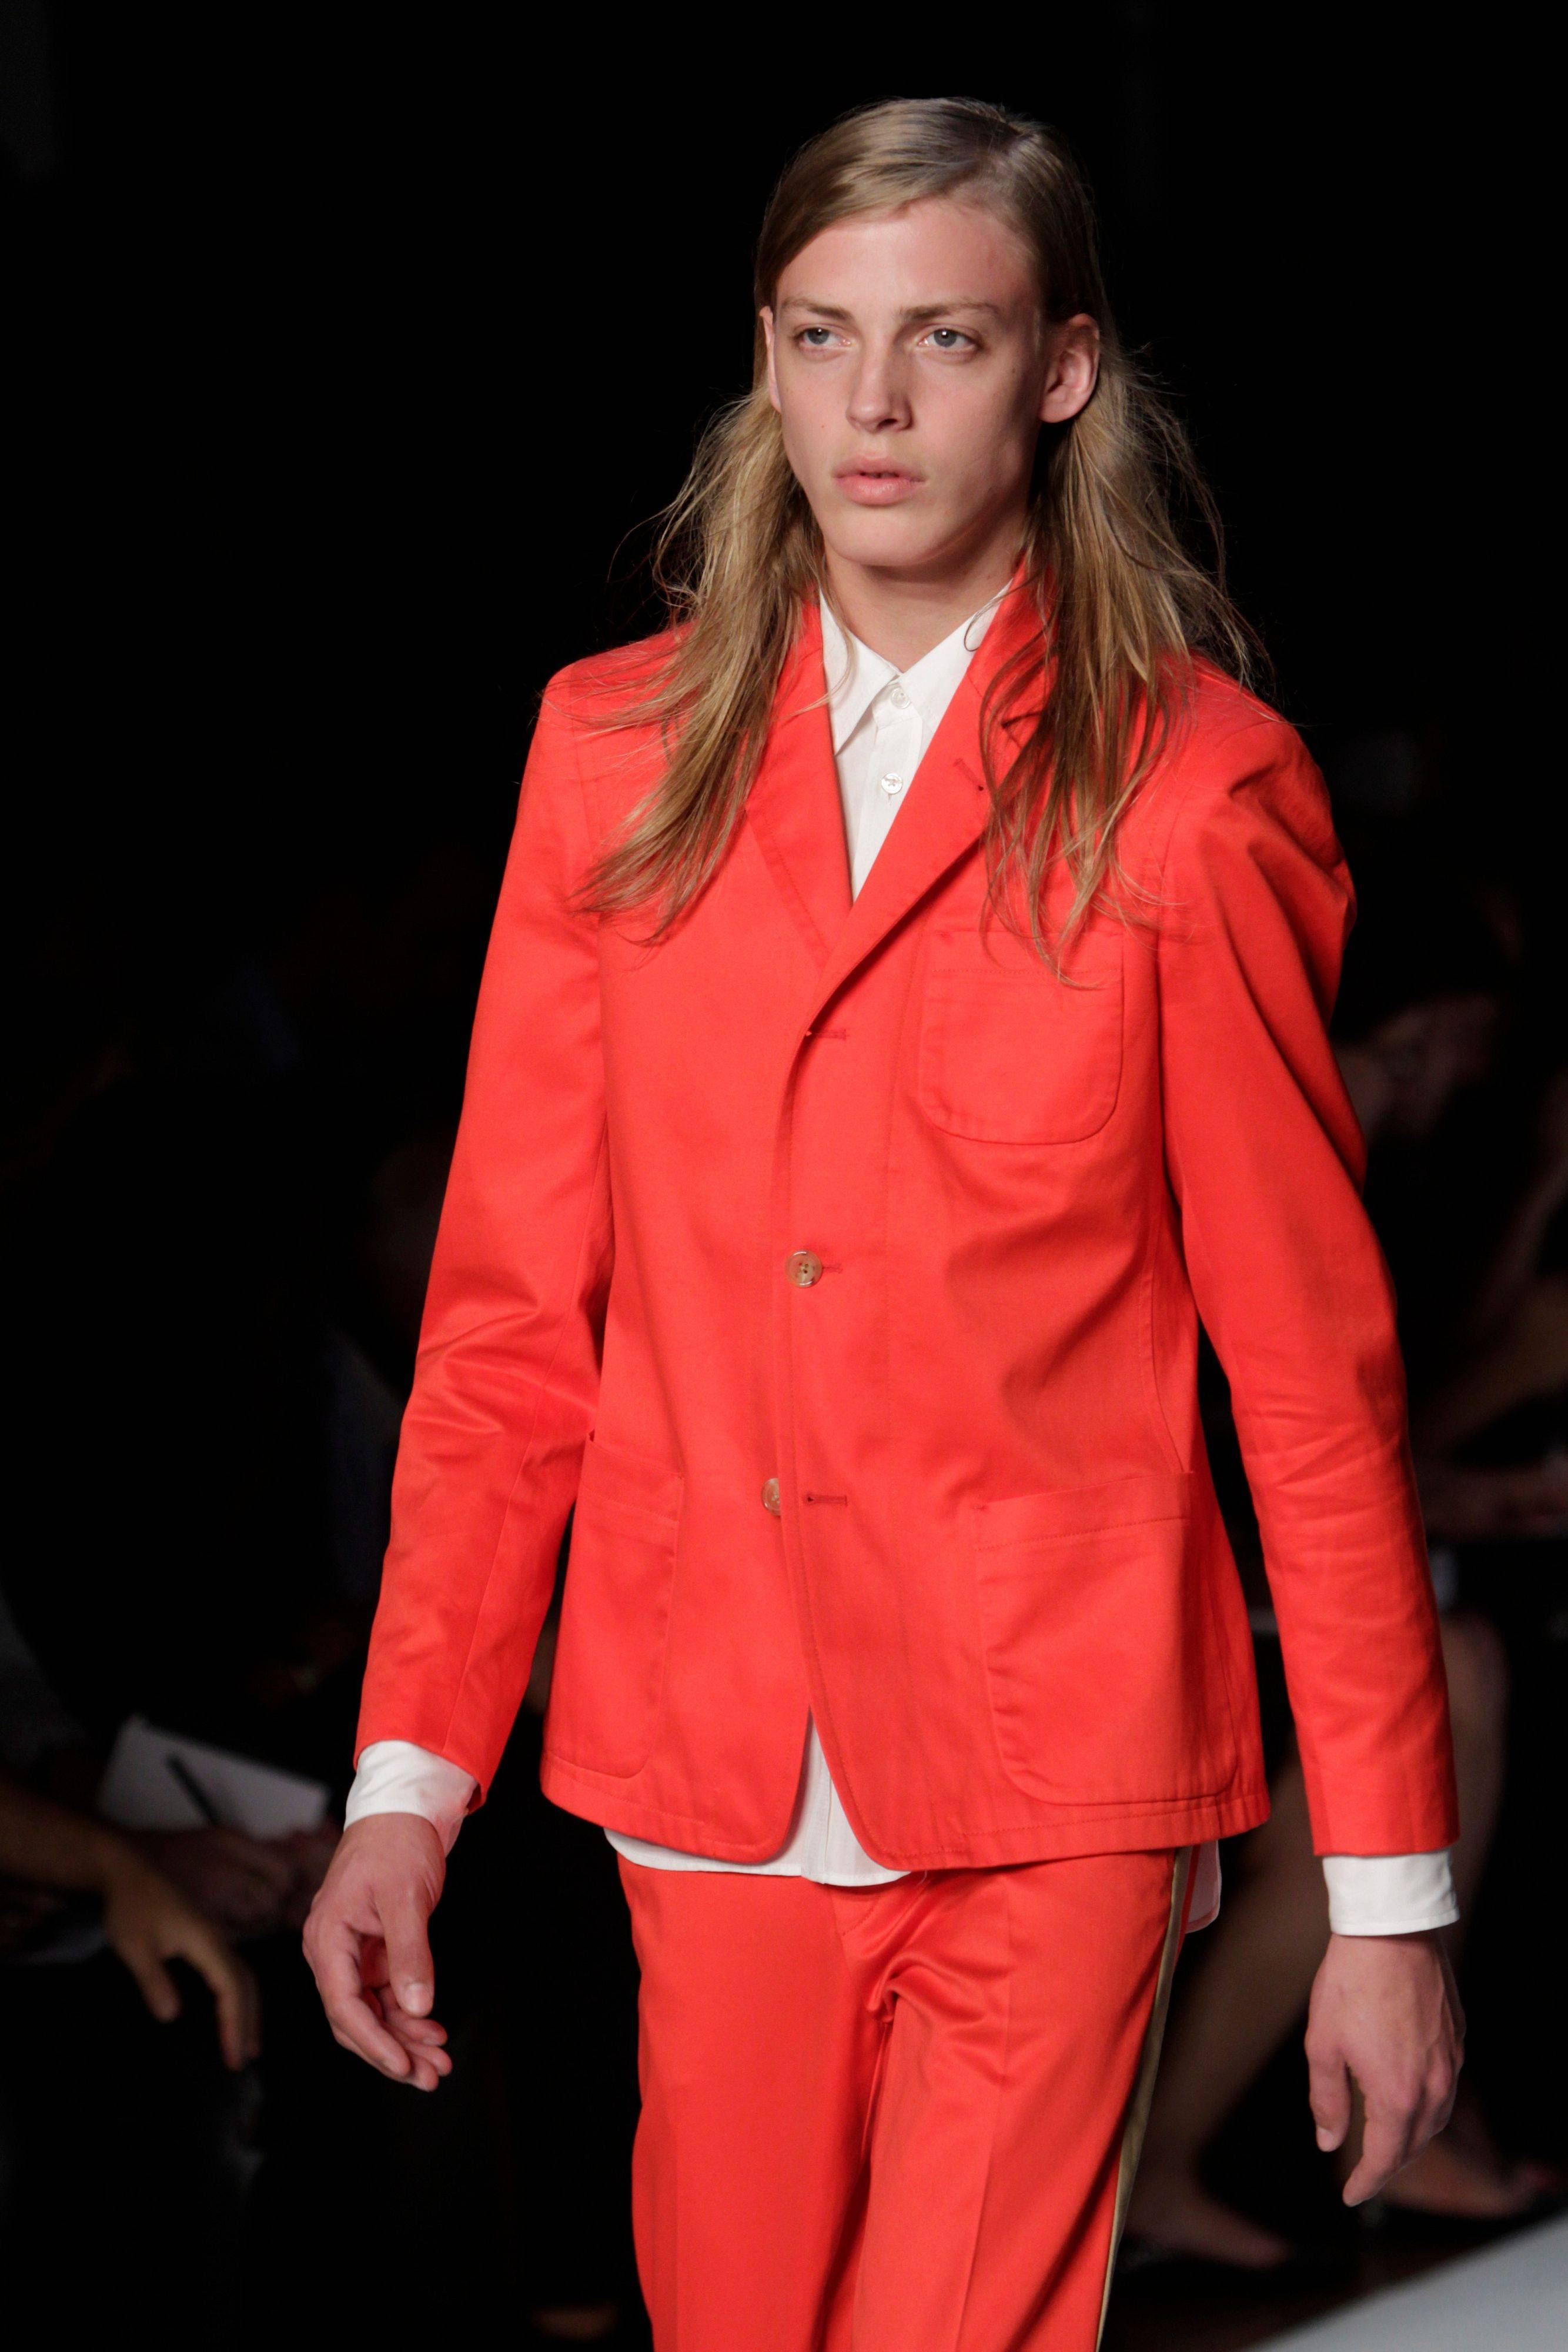 The Marc By Marc Jacobs Spring 2012 collection is modeled Monday, Sept. 12, 2011 during Fashion Week in New York.